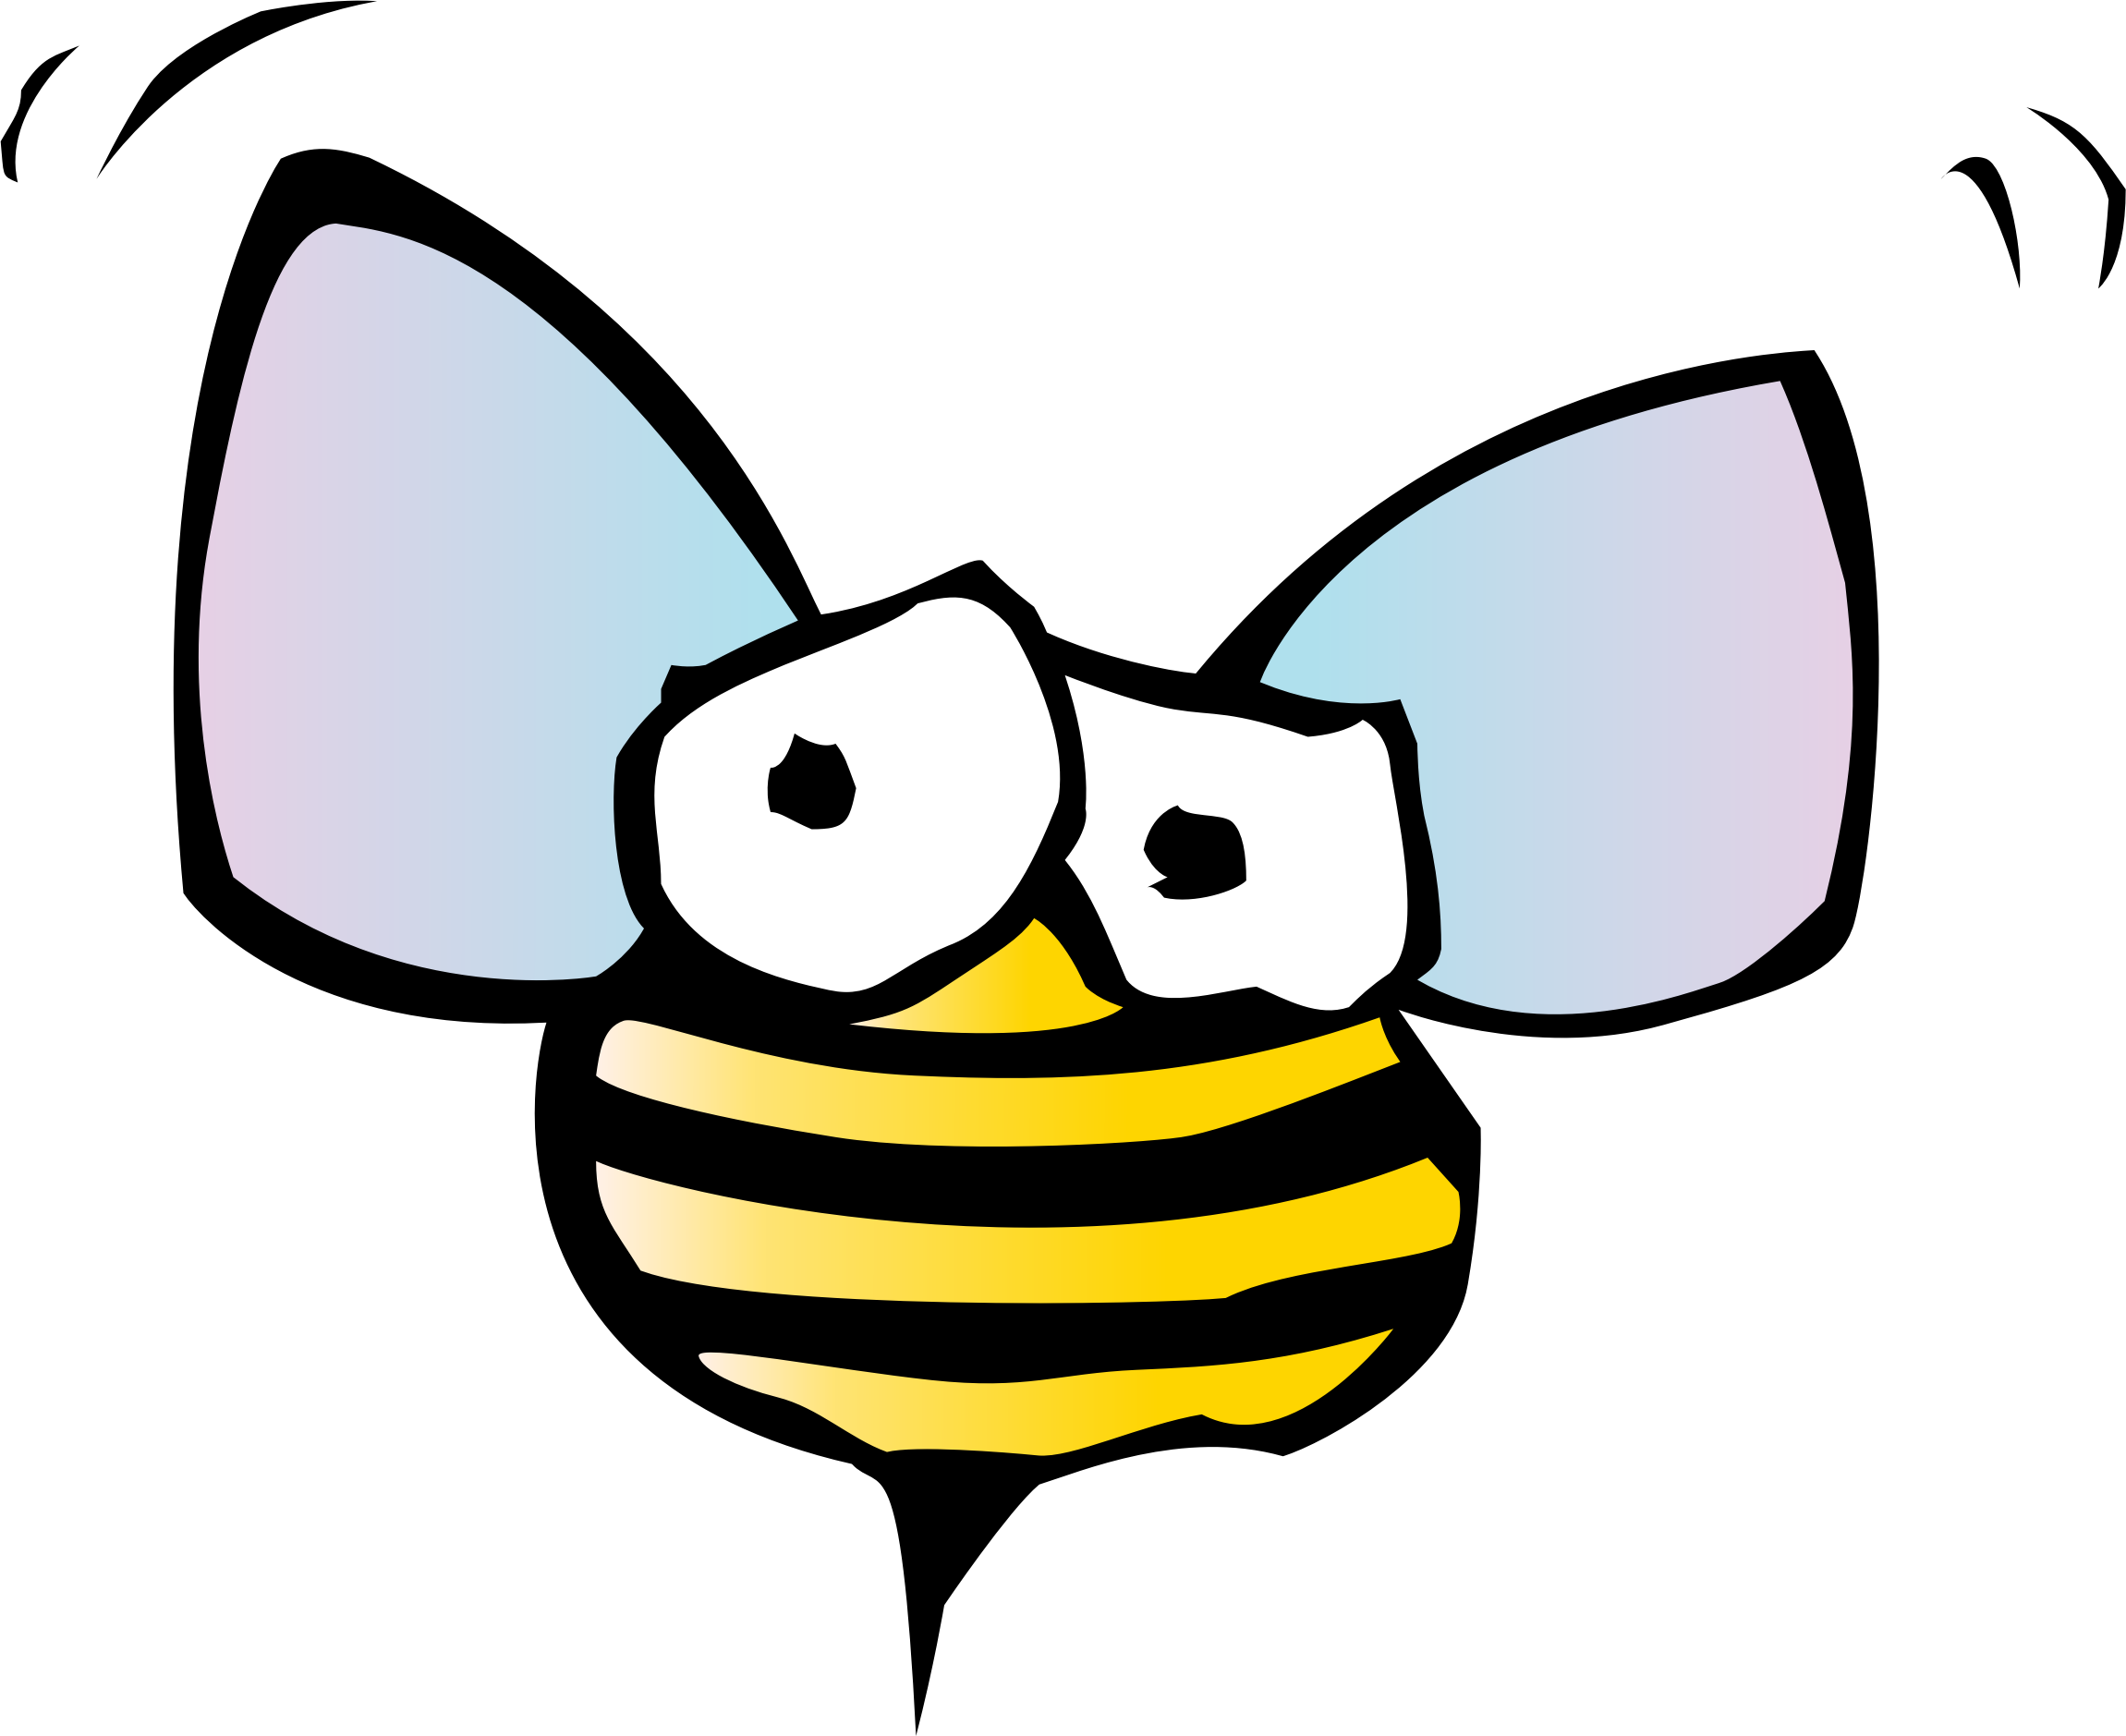 Bee big image png. Insect clipart spring